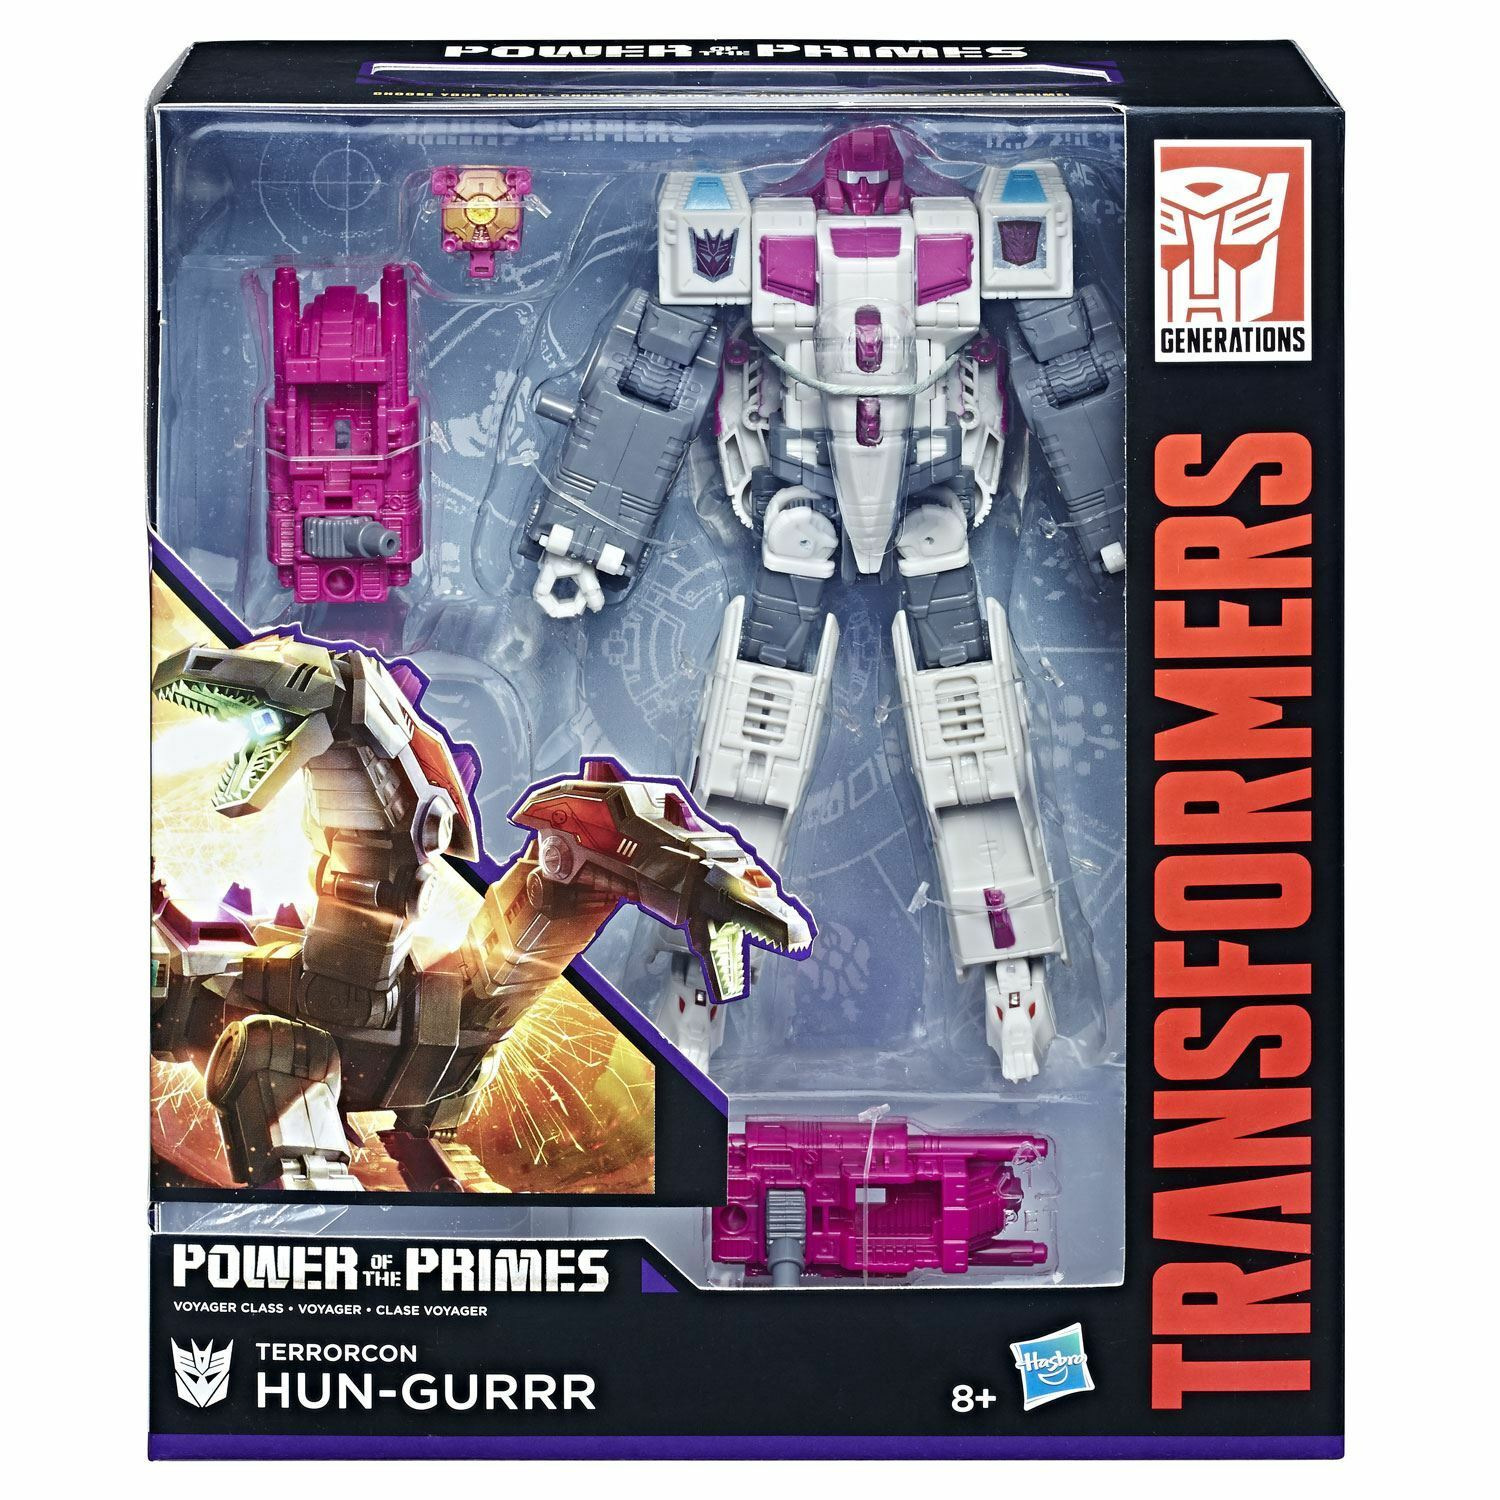 Transformers Generations Power of the Primes Voyager Class Class Class Terrorcon HUN-GURR b719a5